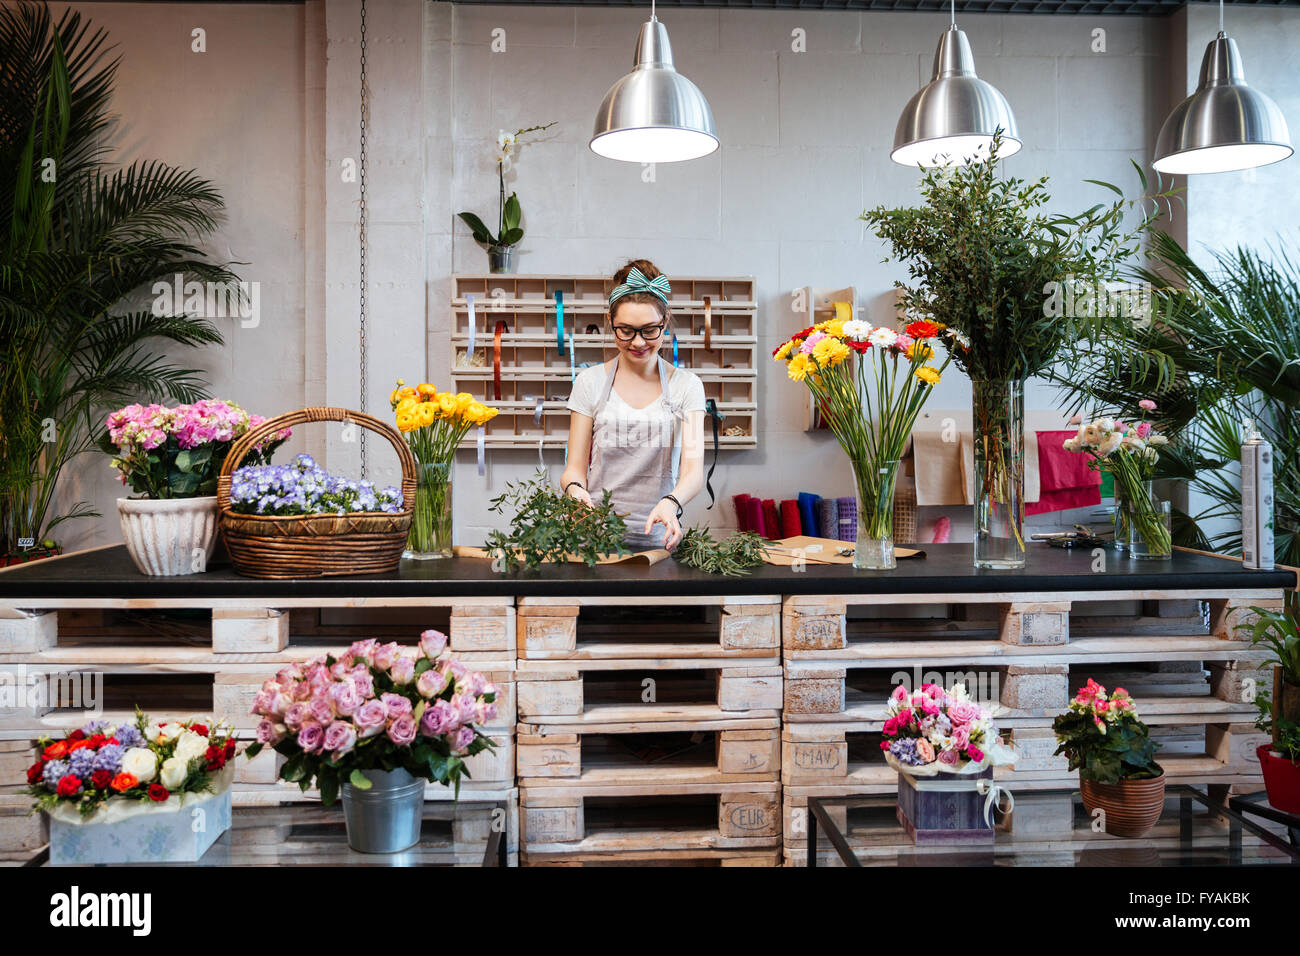 Smiling attractive young woman florist standing and working in flower shop - Stock Image